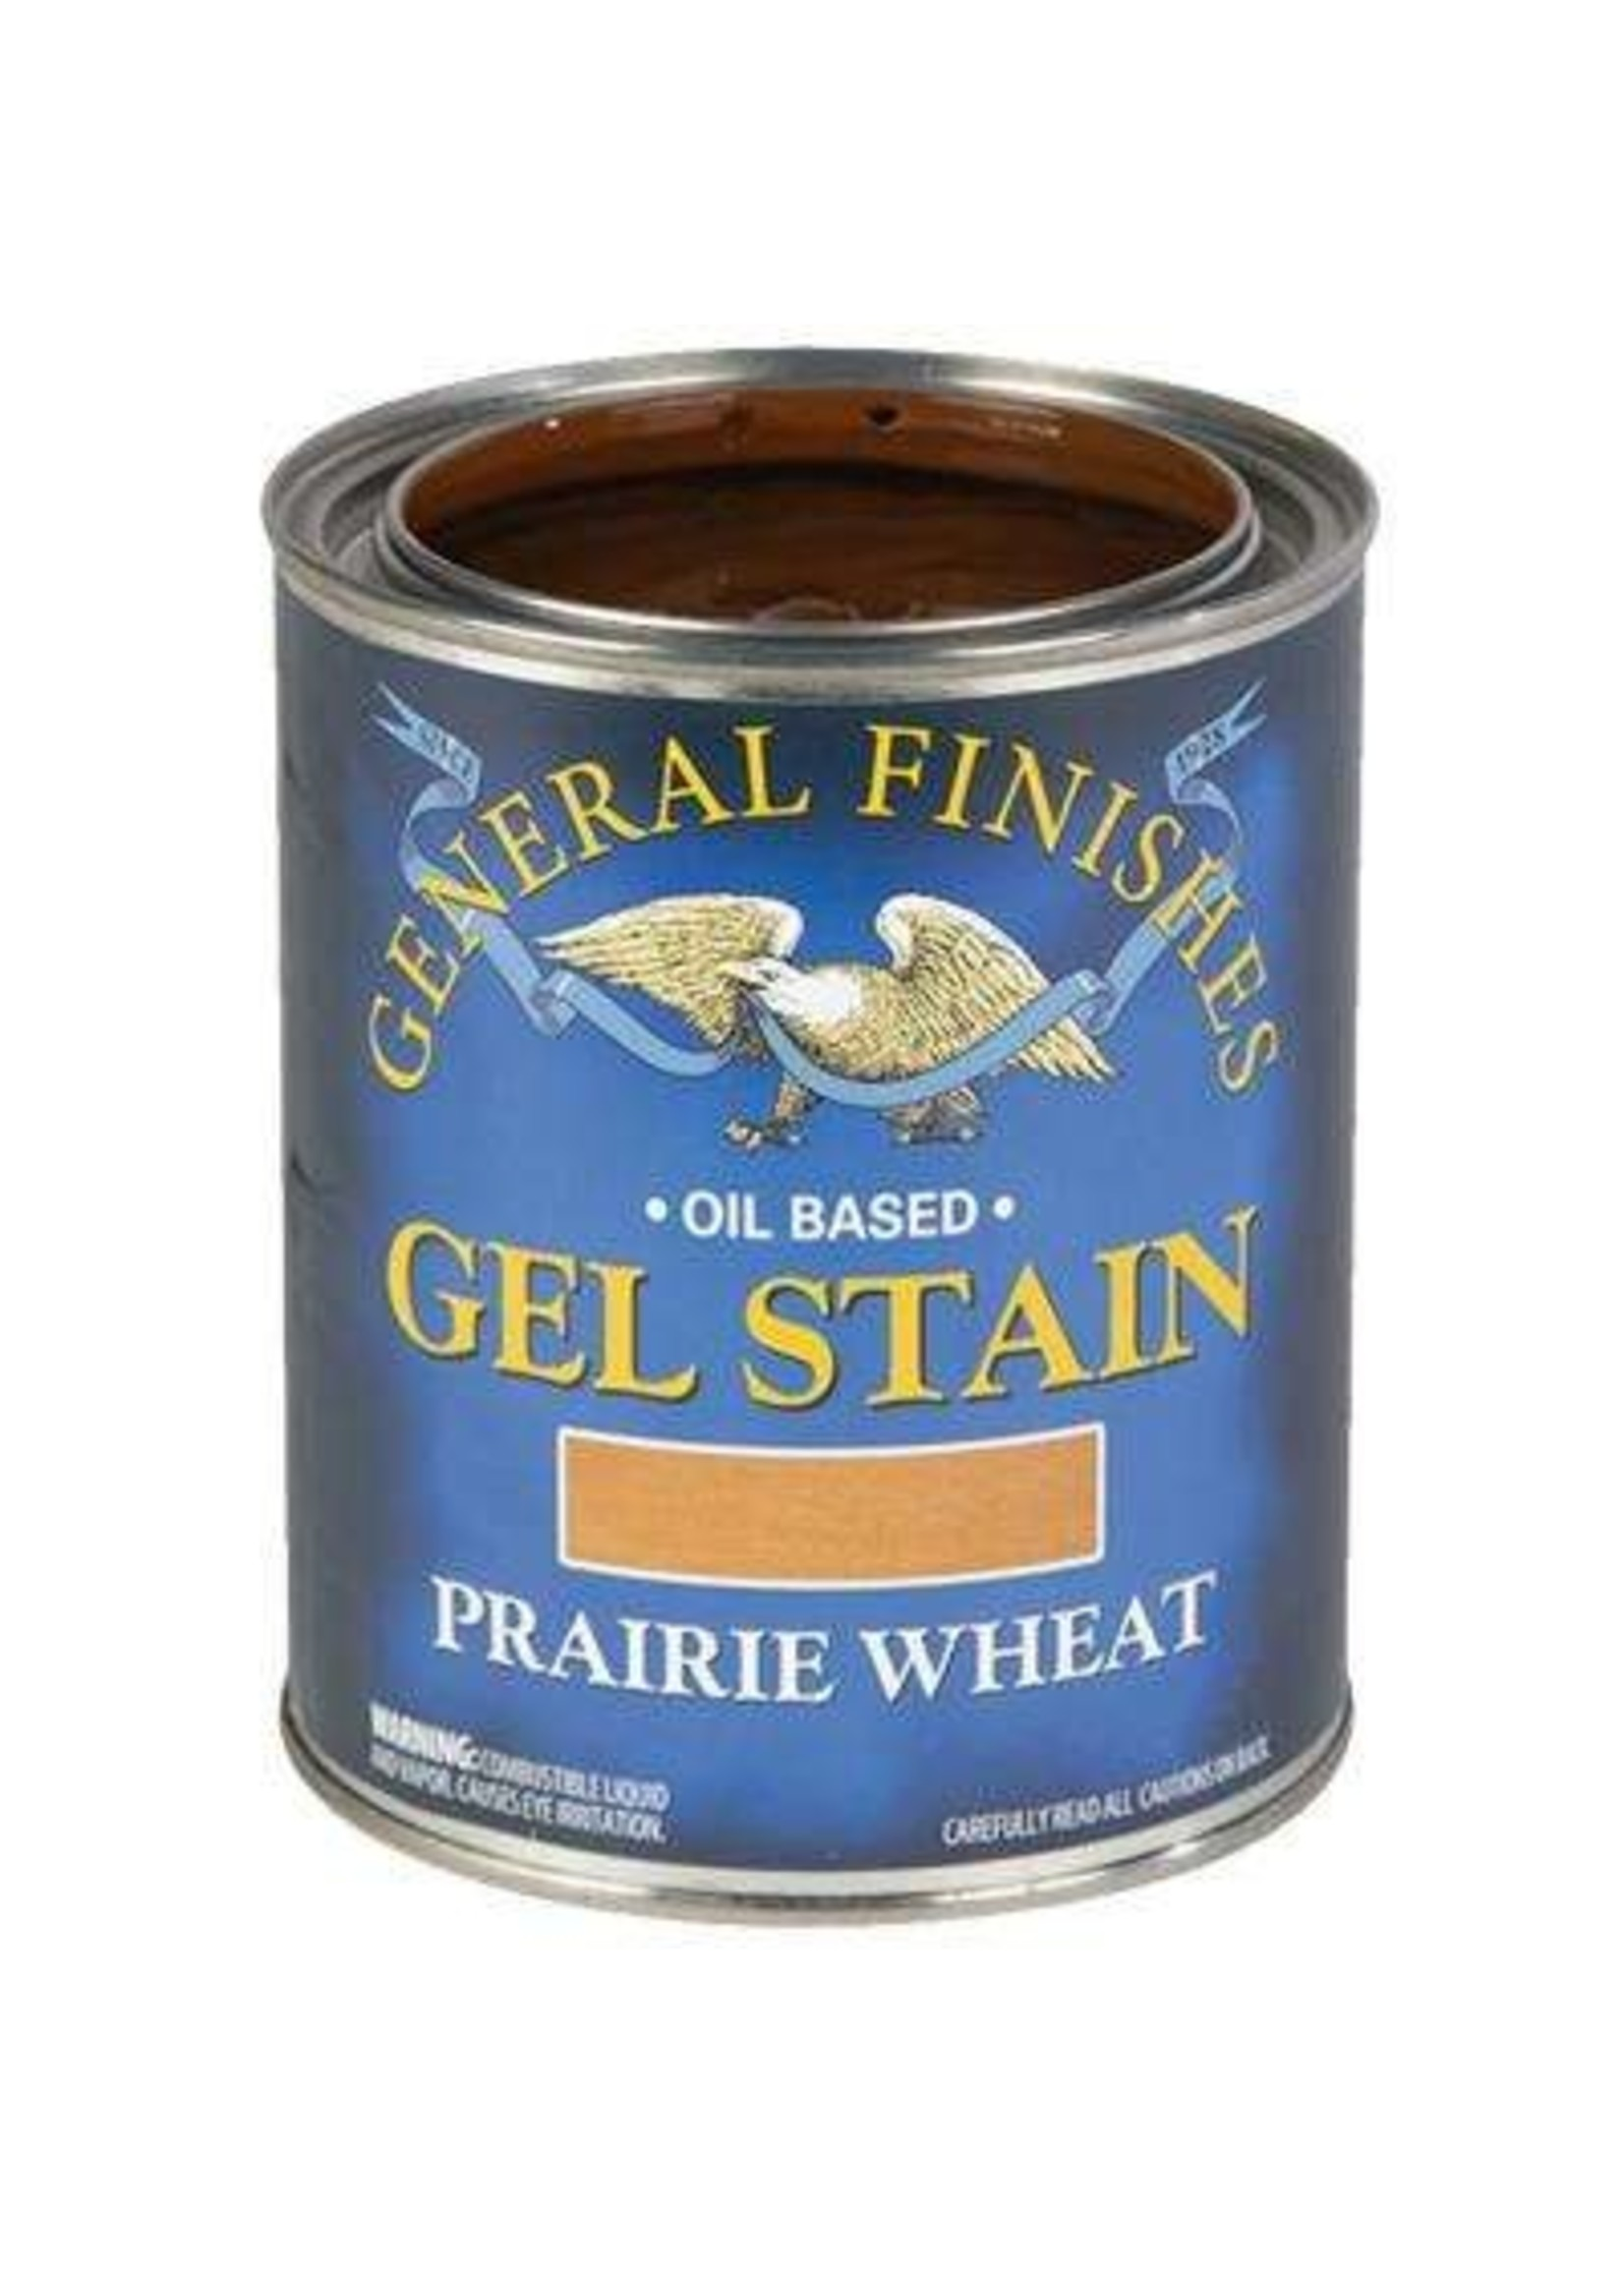 General Finishes Prairie Wheat General Finishes Gel Stain